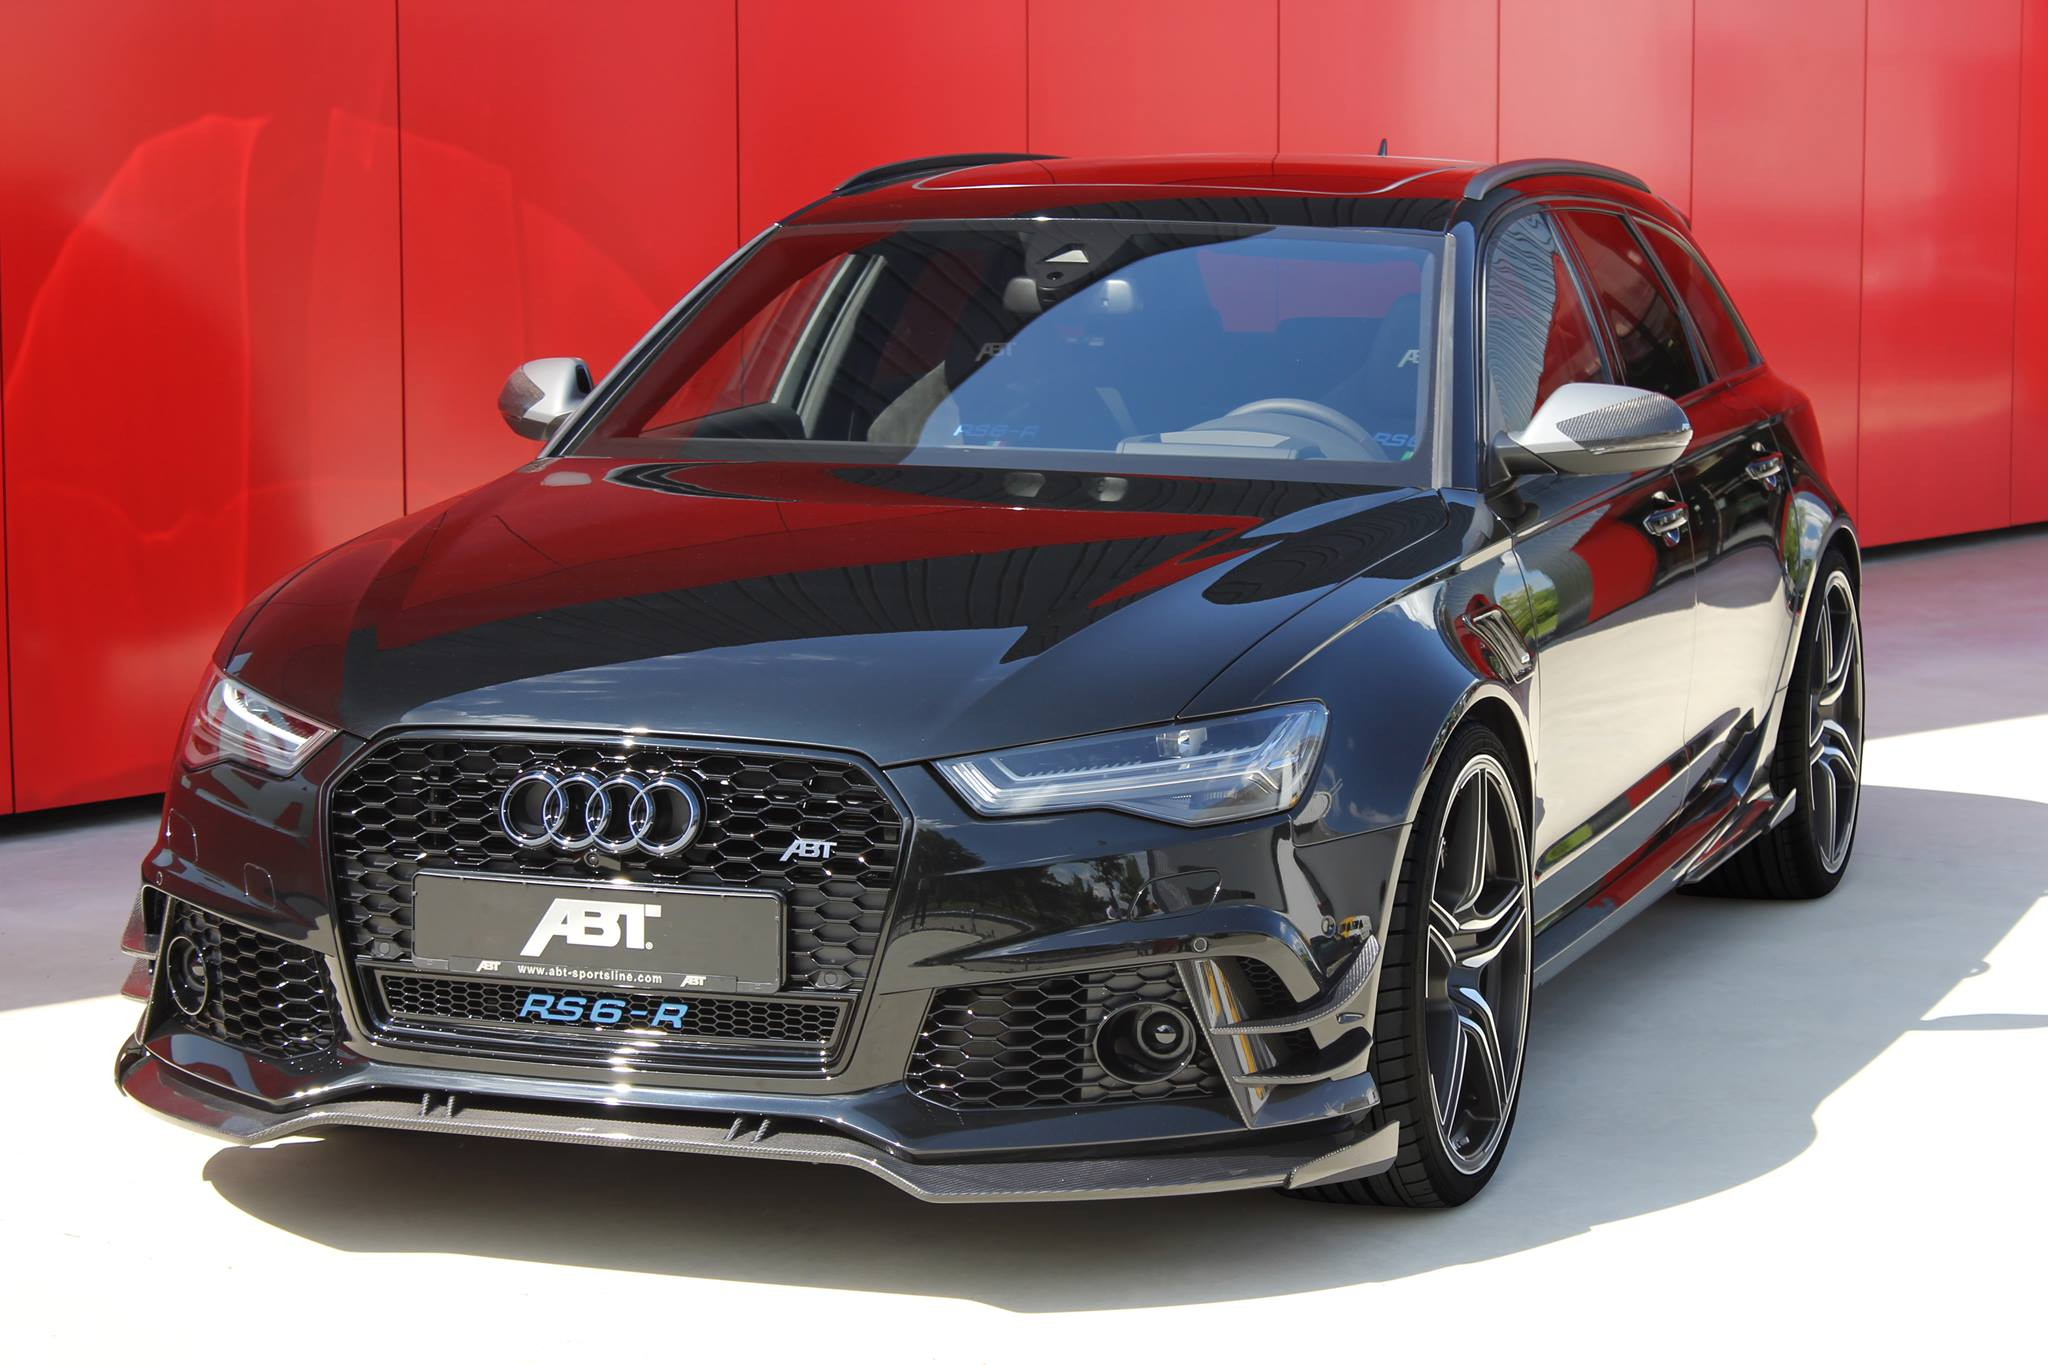 Abt Rs6 R Edizione Italiana Is Another 730 Hp Audi